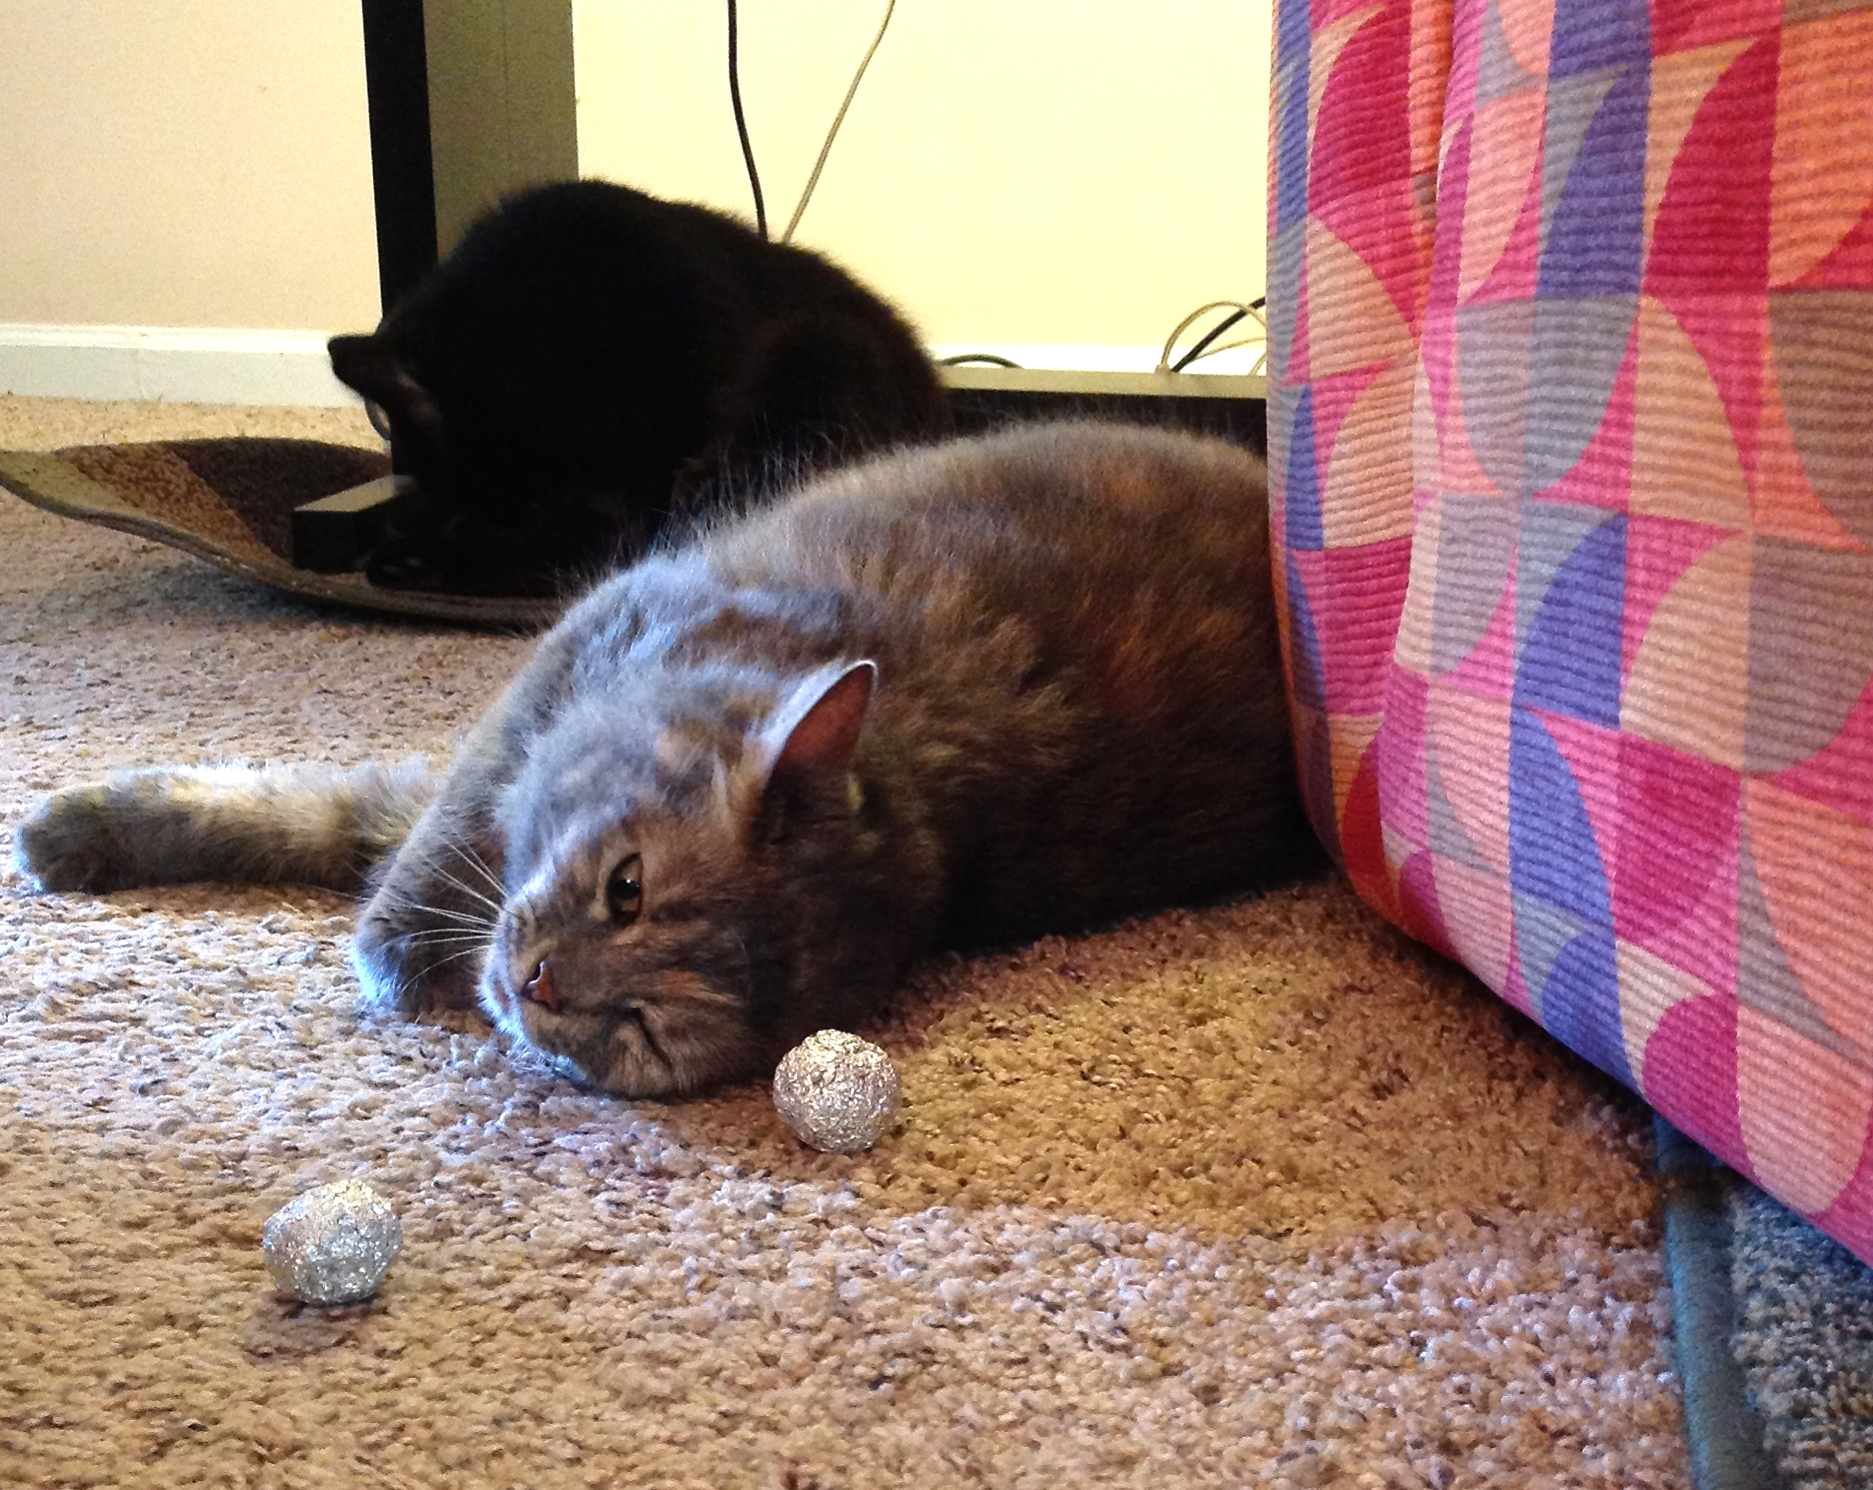 Tiny Ting loves foil balls. Her brother Samuel carries on.